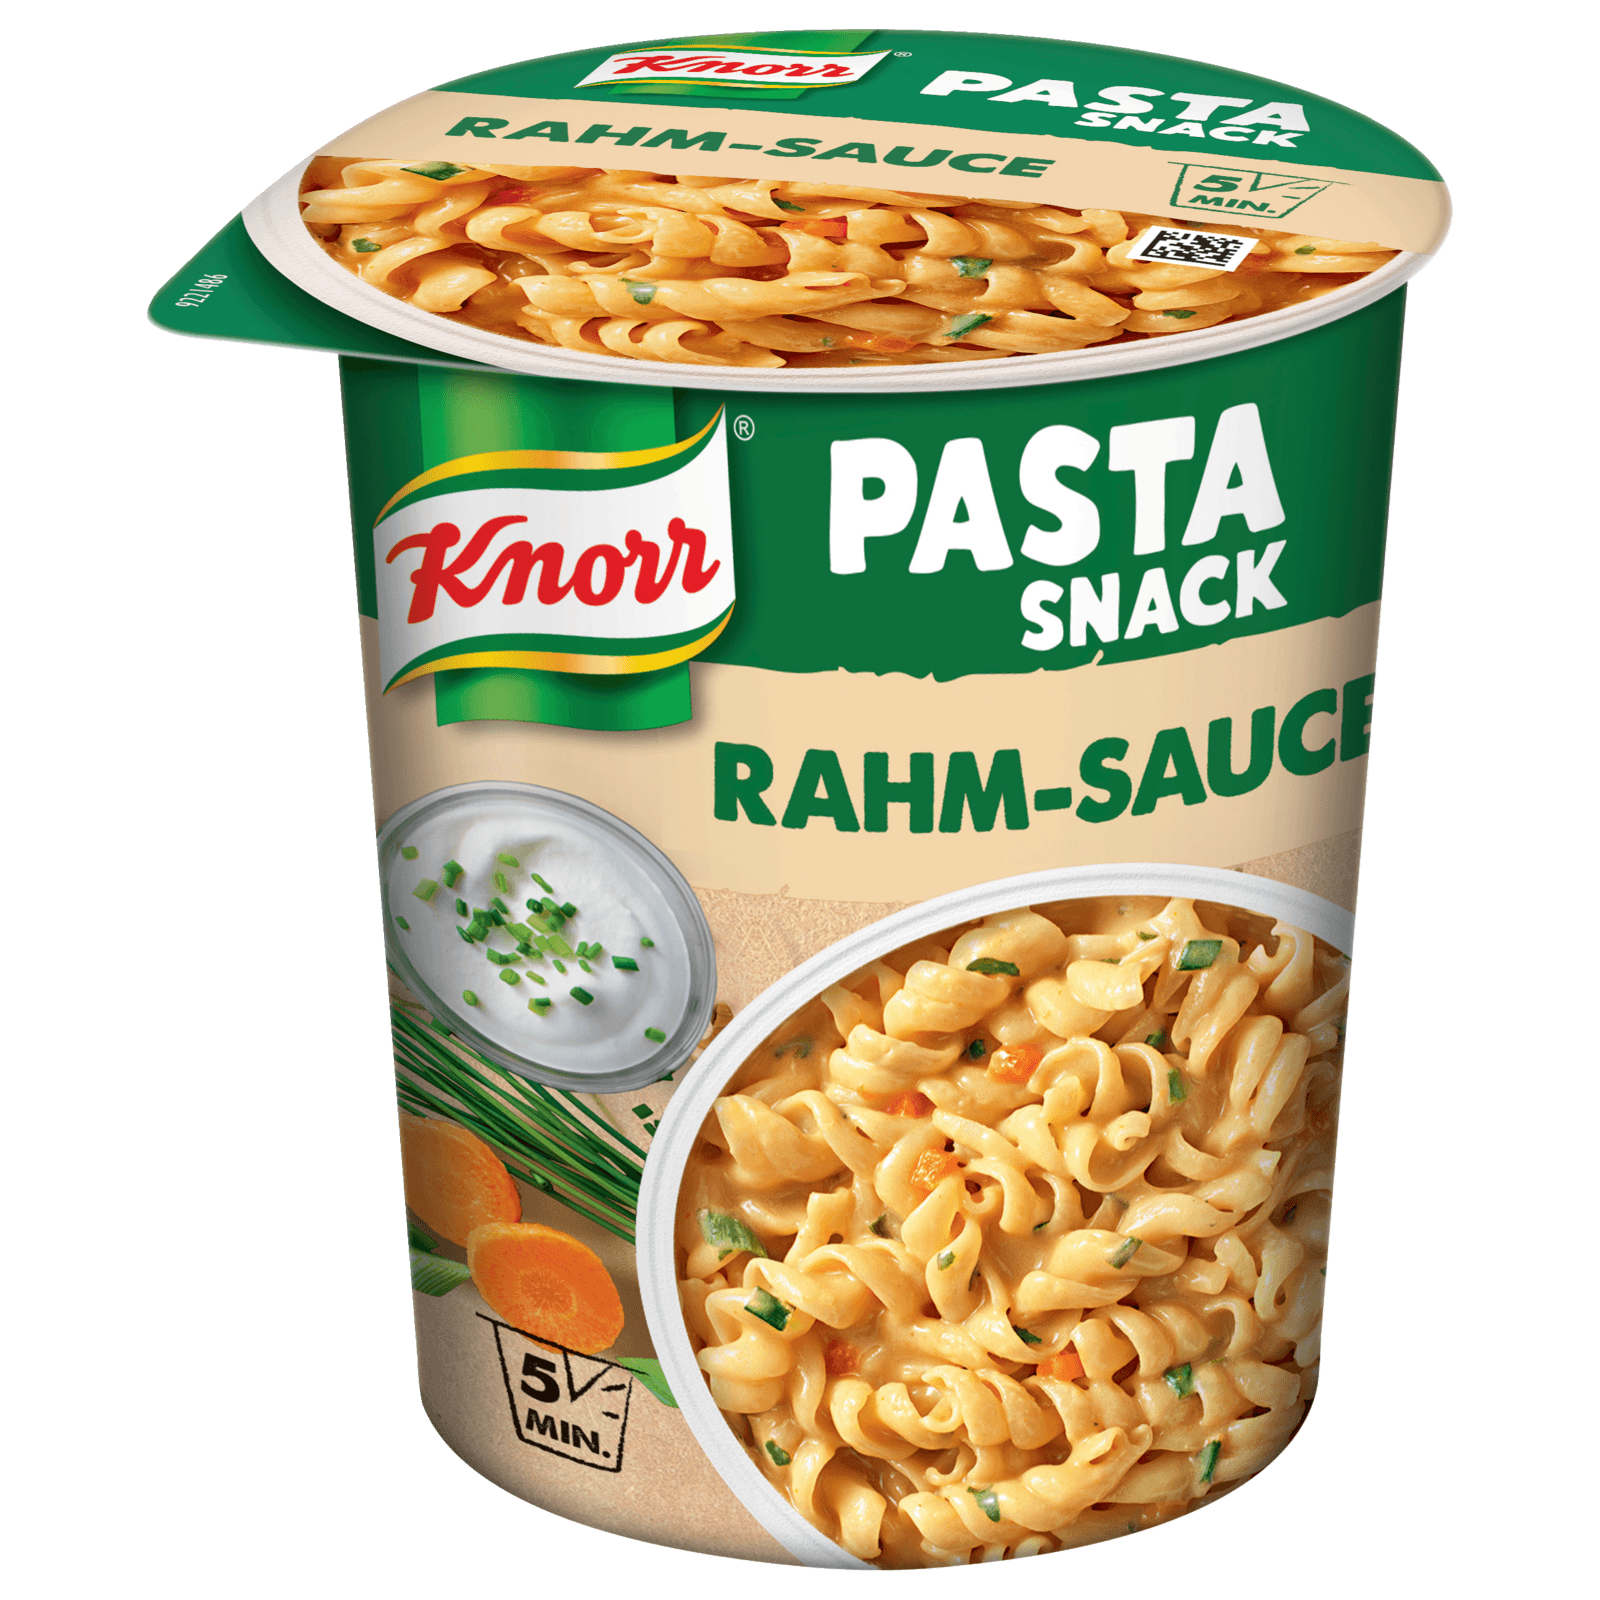 Knorr Pasta Snack Nudeln in Rahm-Sauce 69g